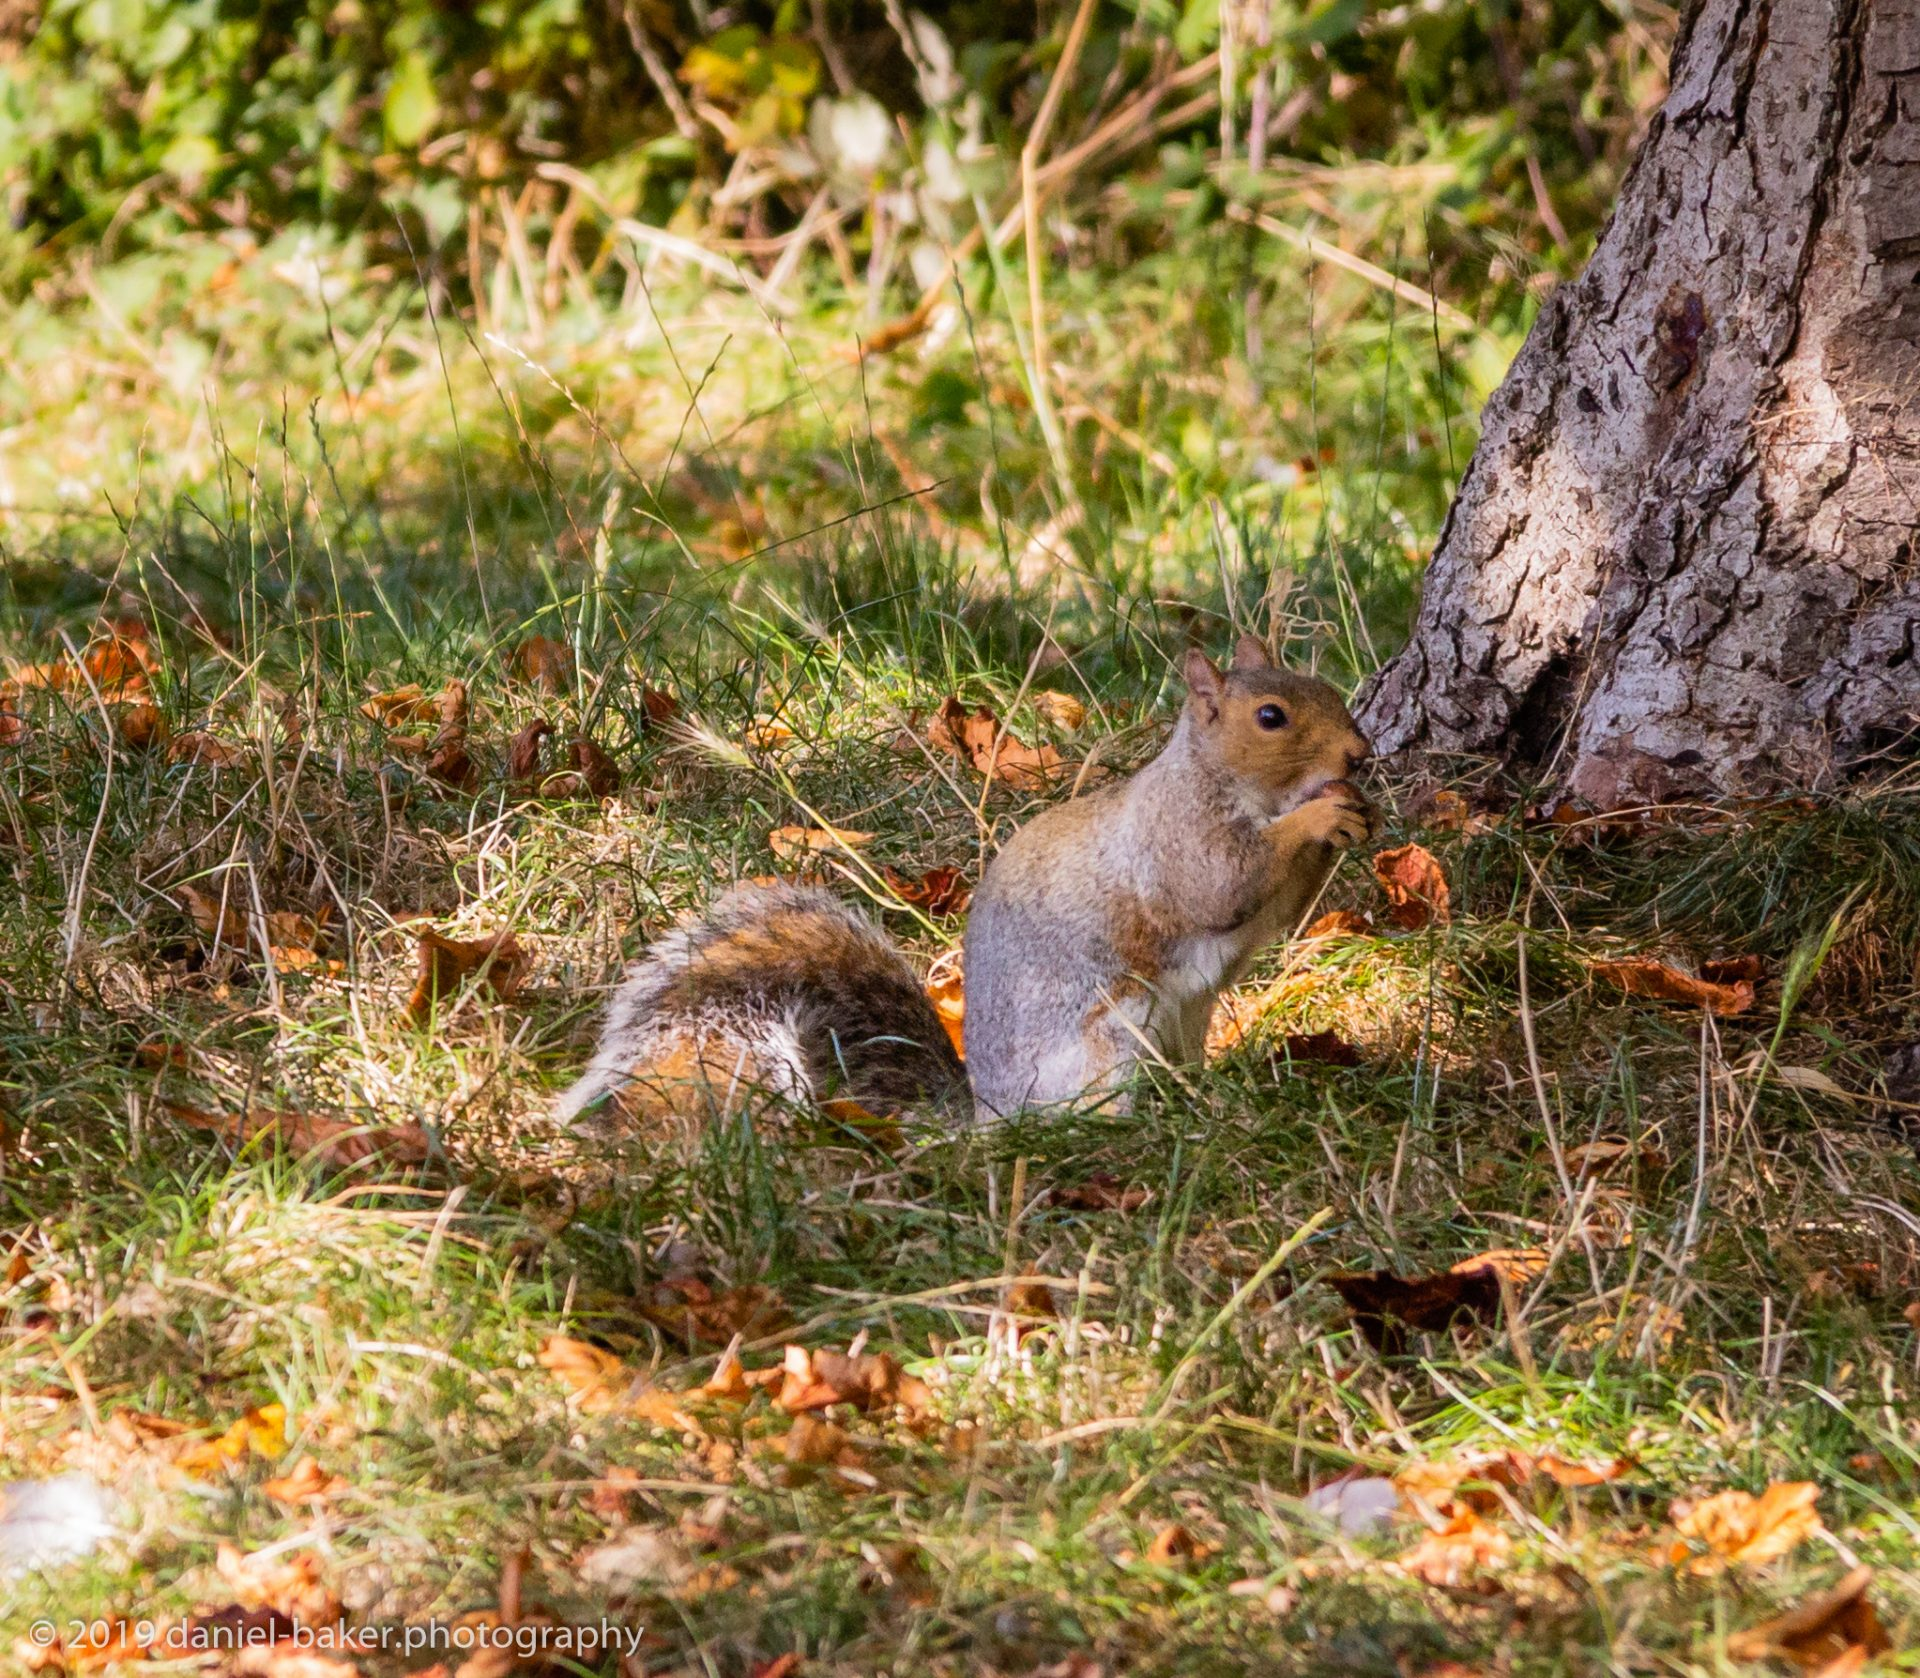 Squirrel eating a nut at Hesters way park